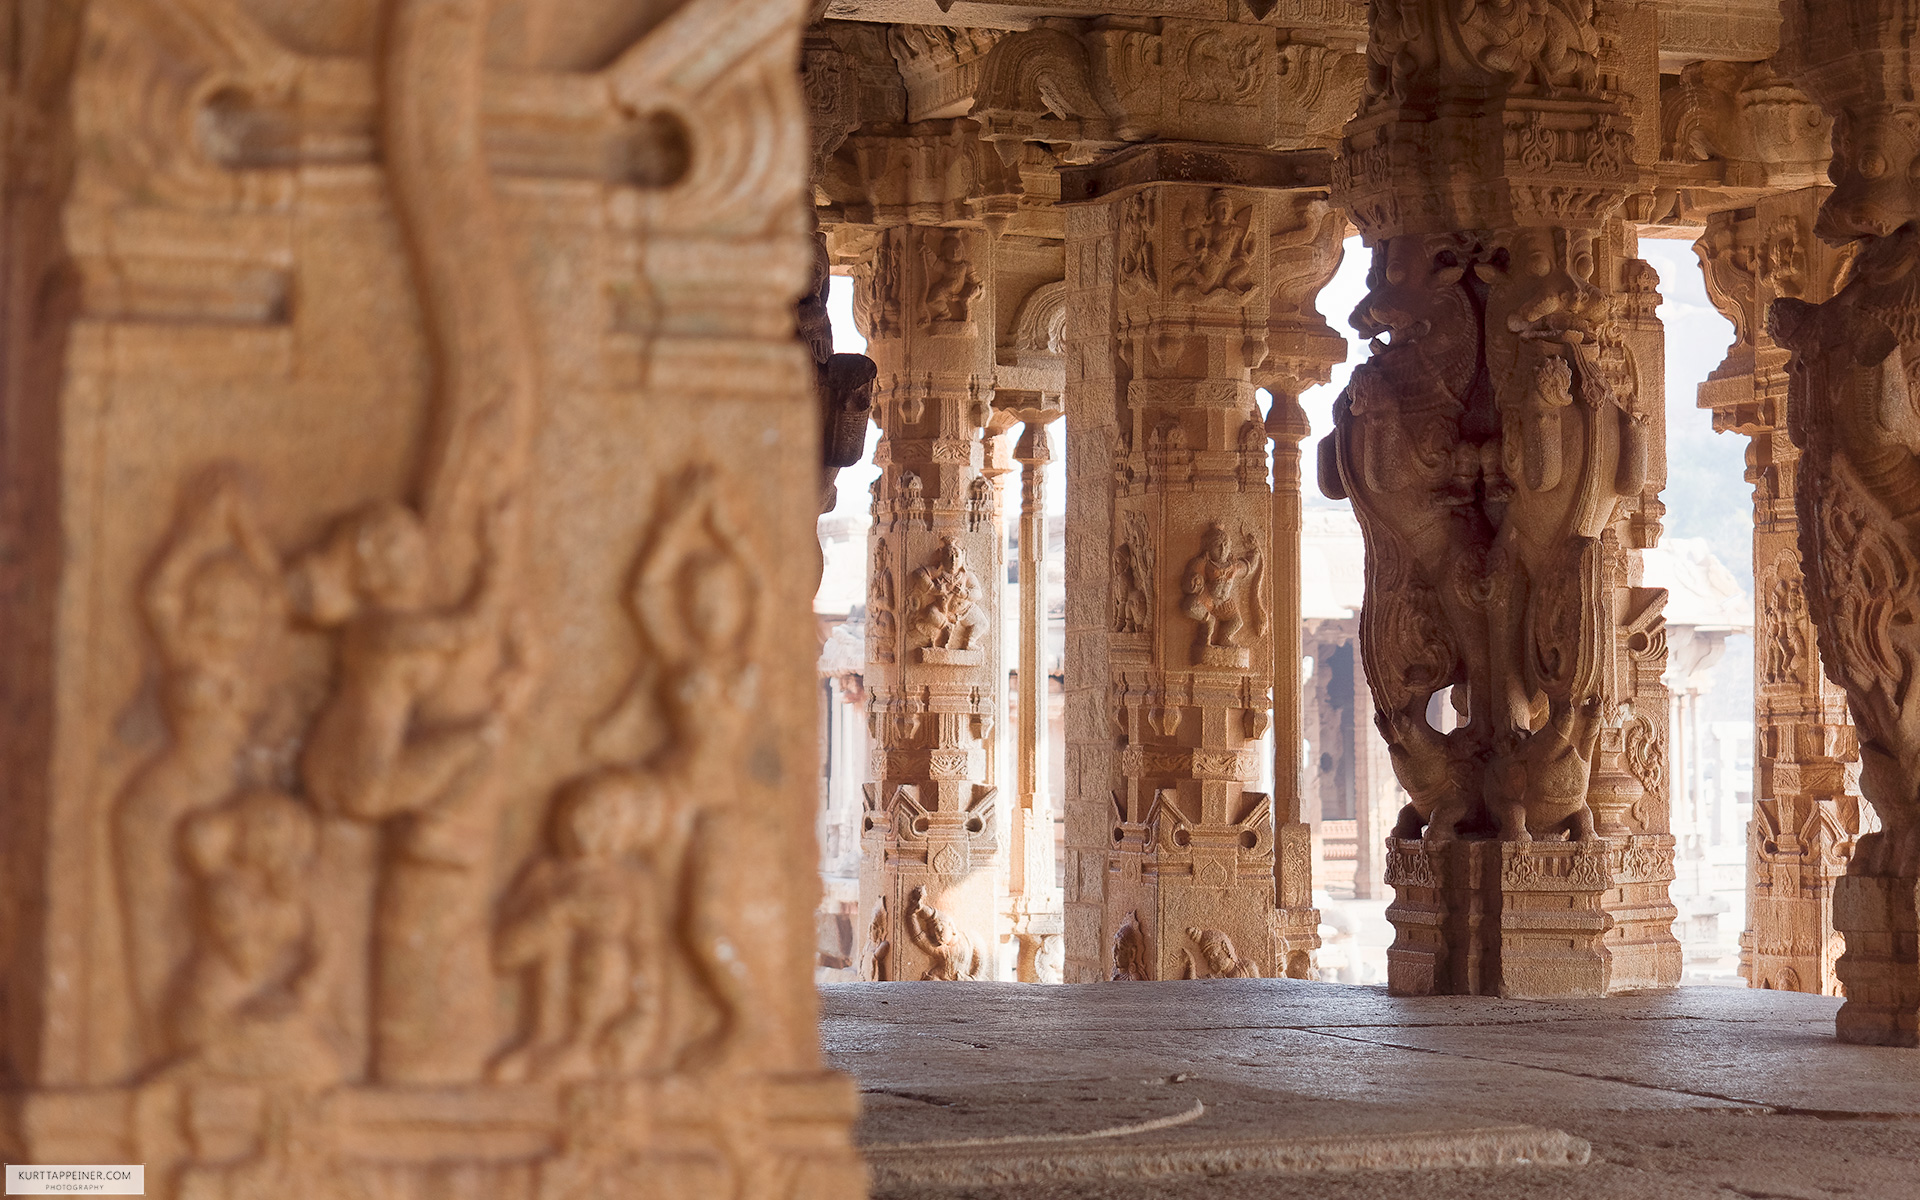 Hampi - Ruins of the magnificent Vijayanagara